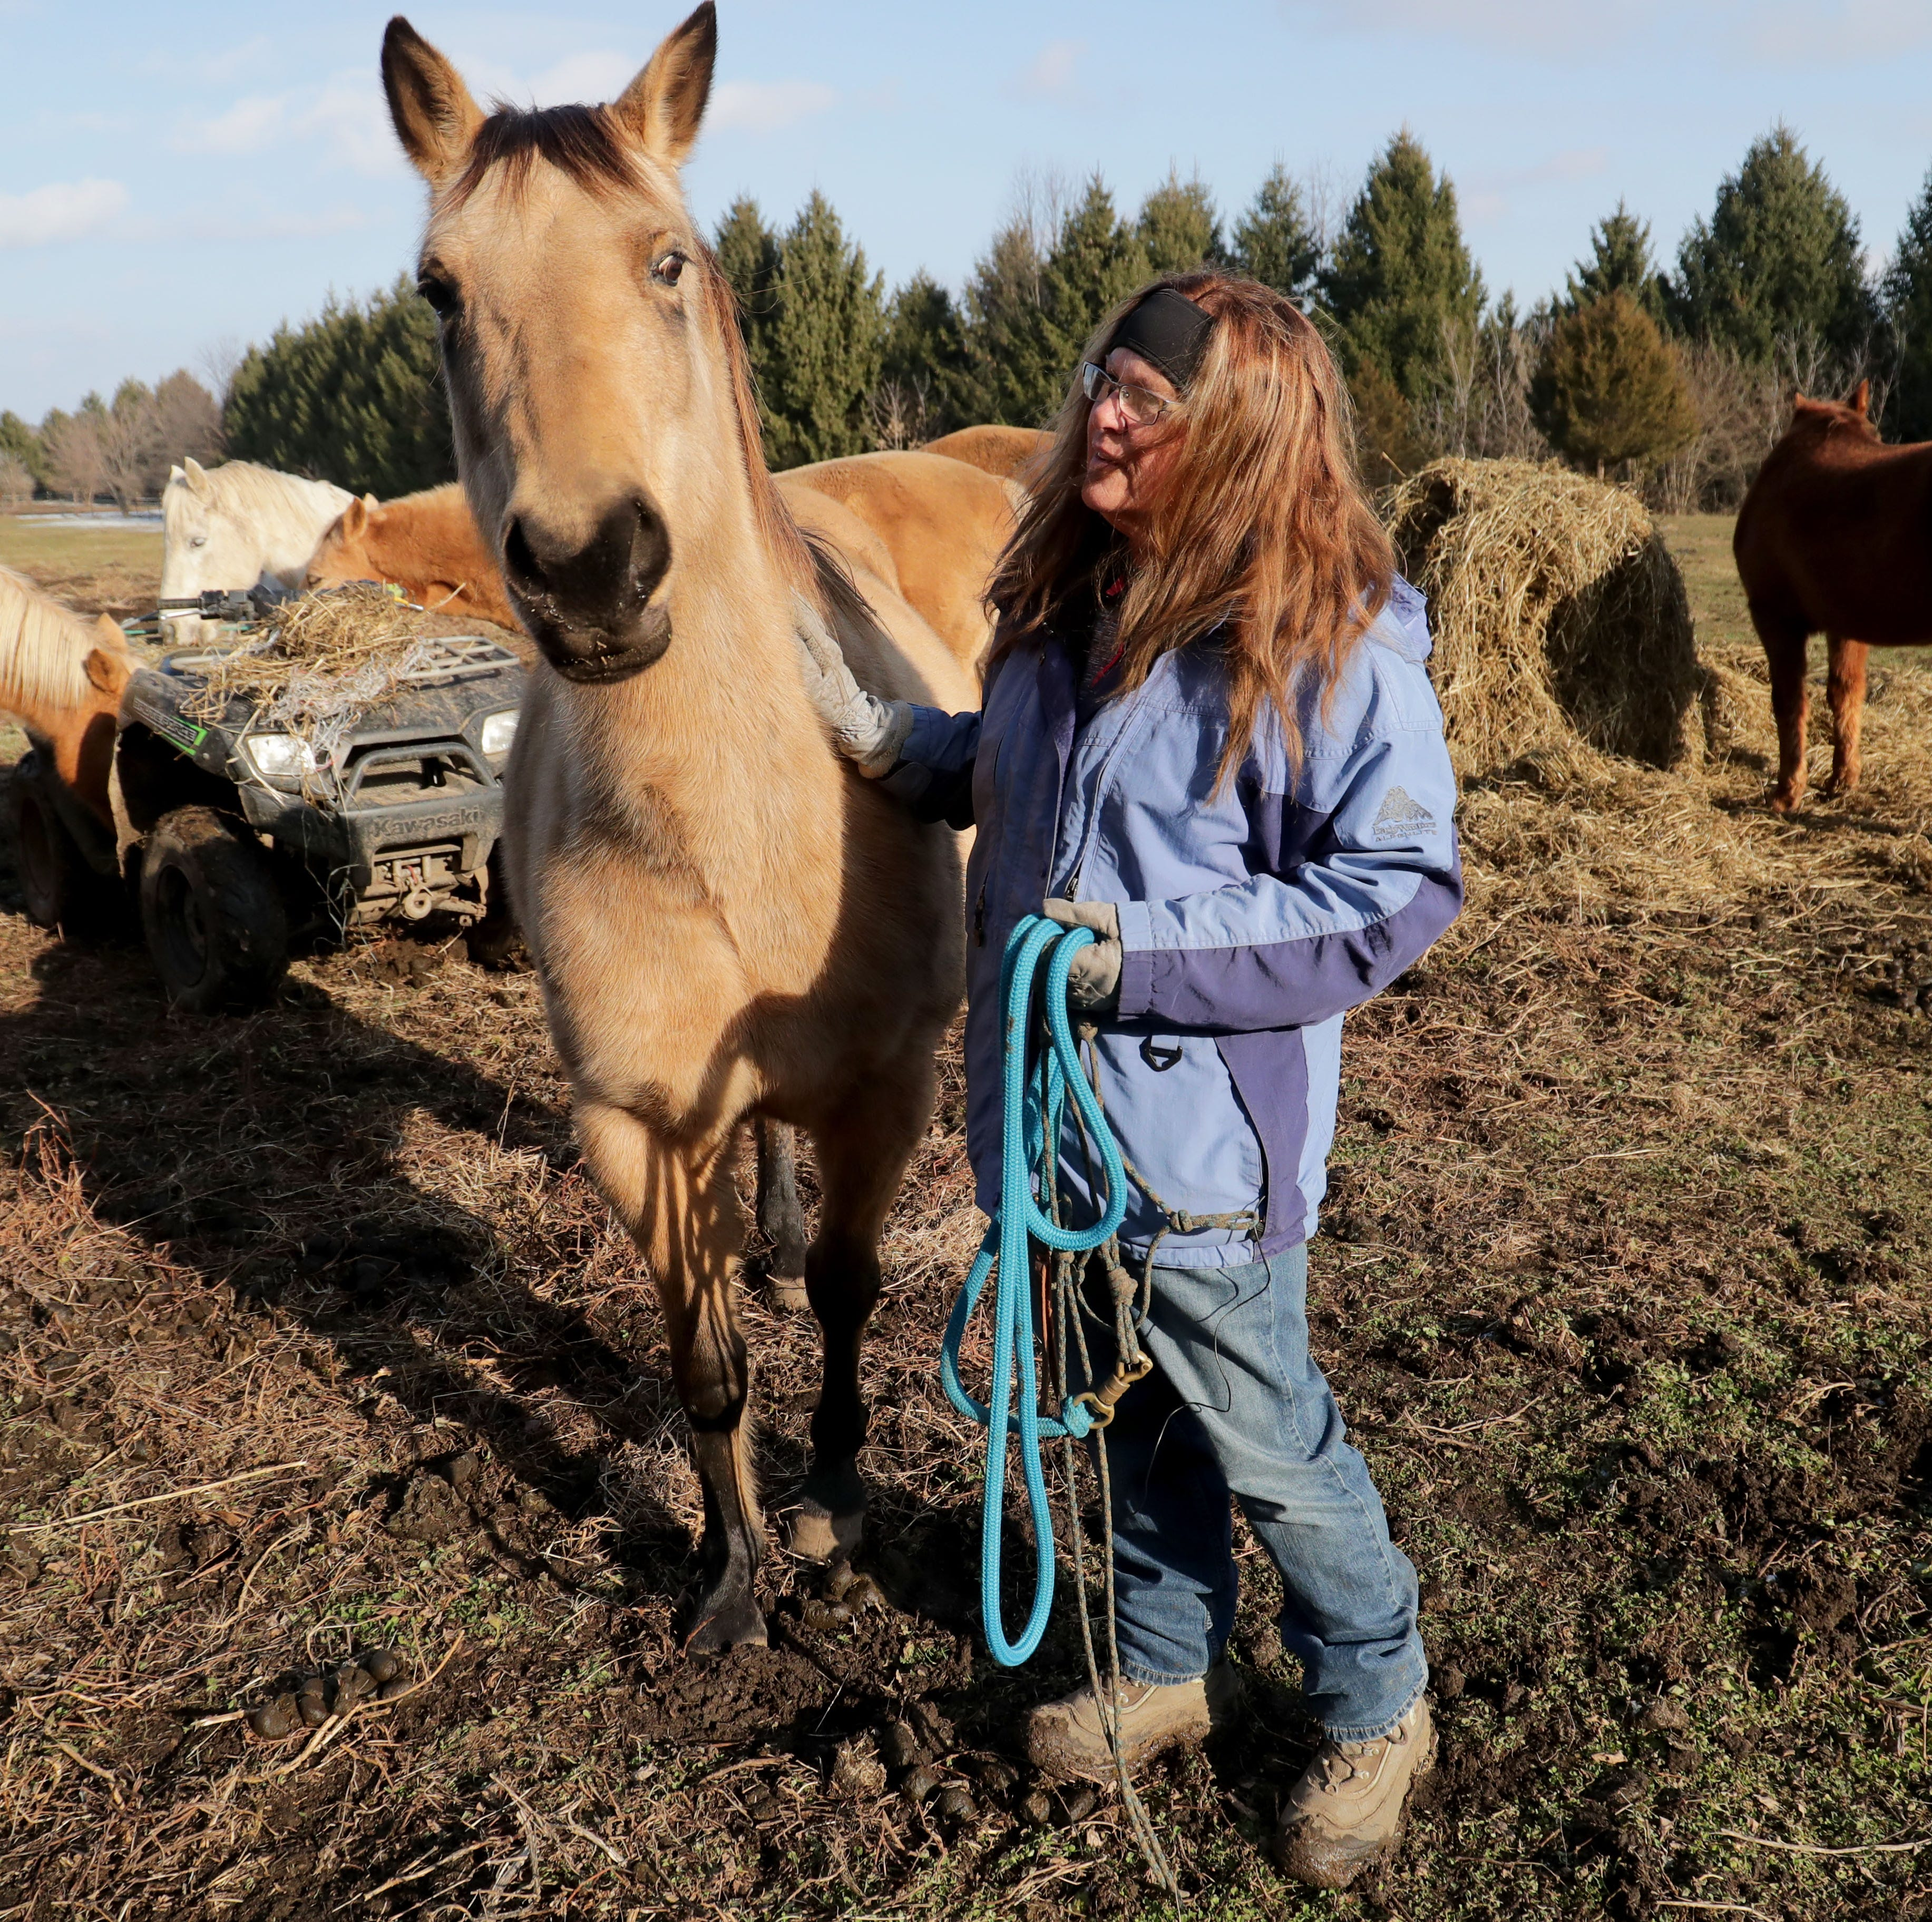 Equine rescue center urgently needs homes for unwanted horses, highlighting nationwide problem